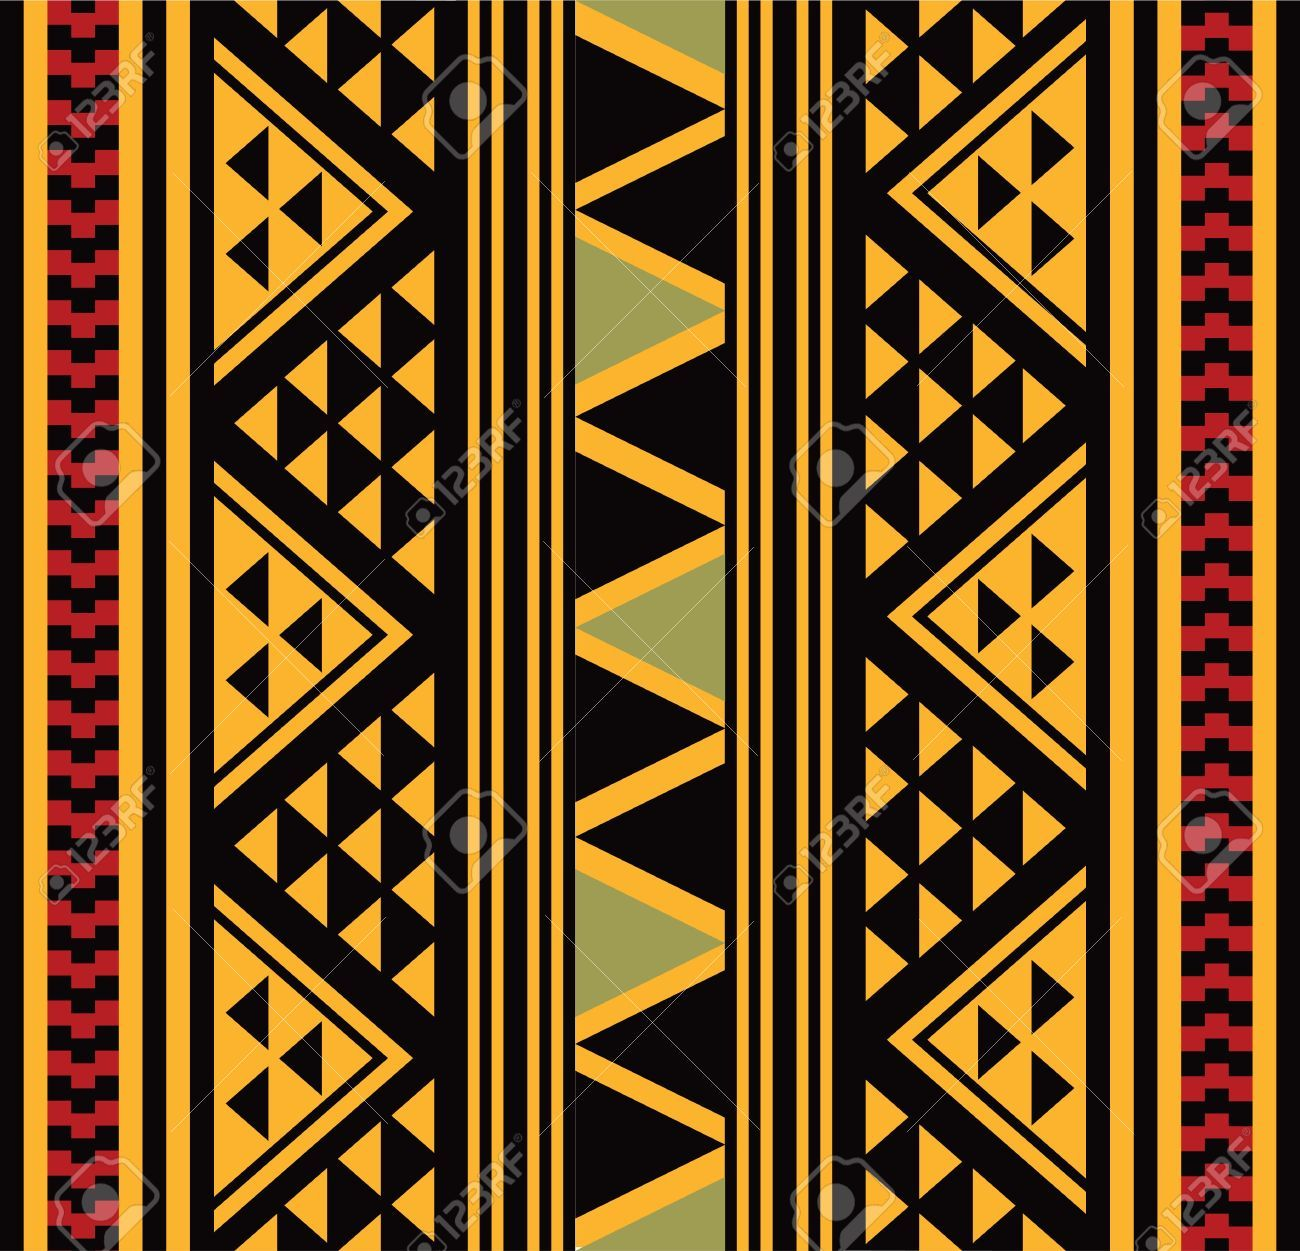 African clipart abstract. M nster cerealbox visuel